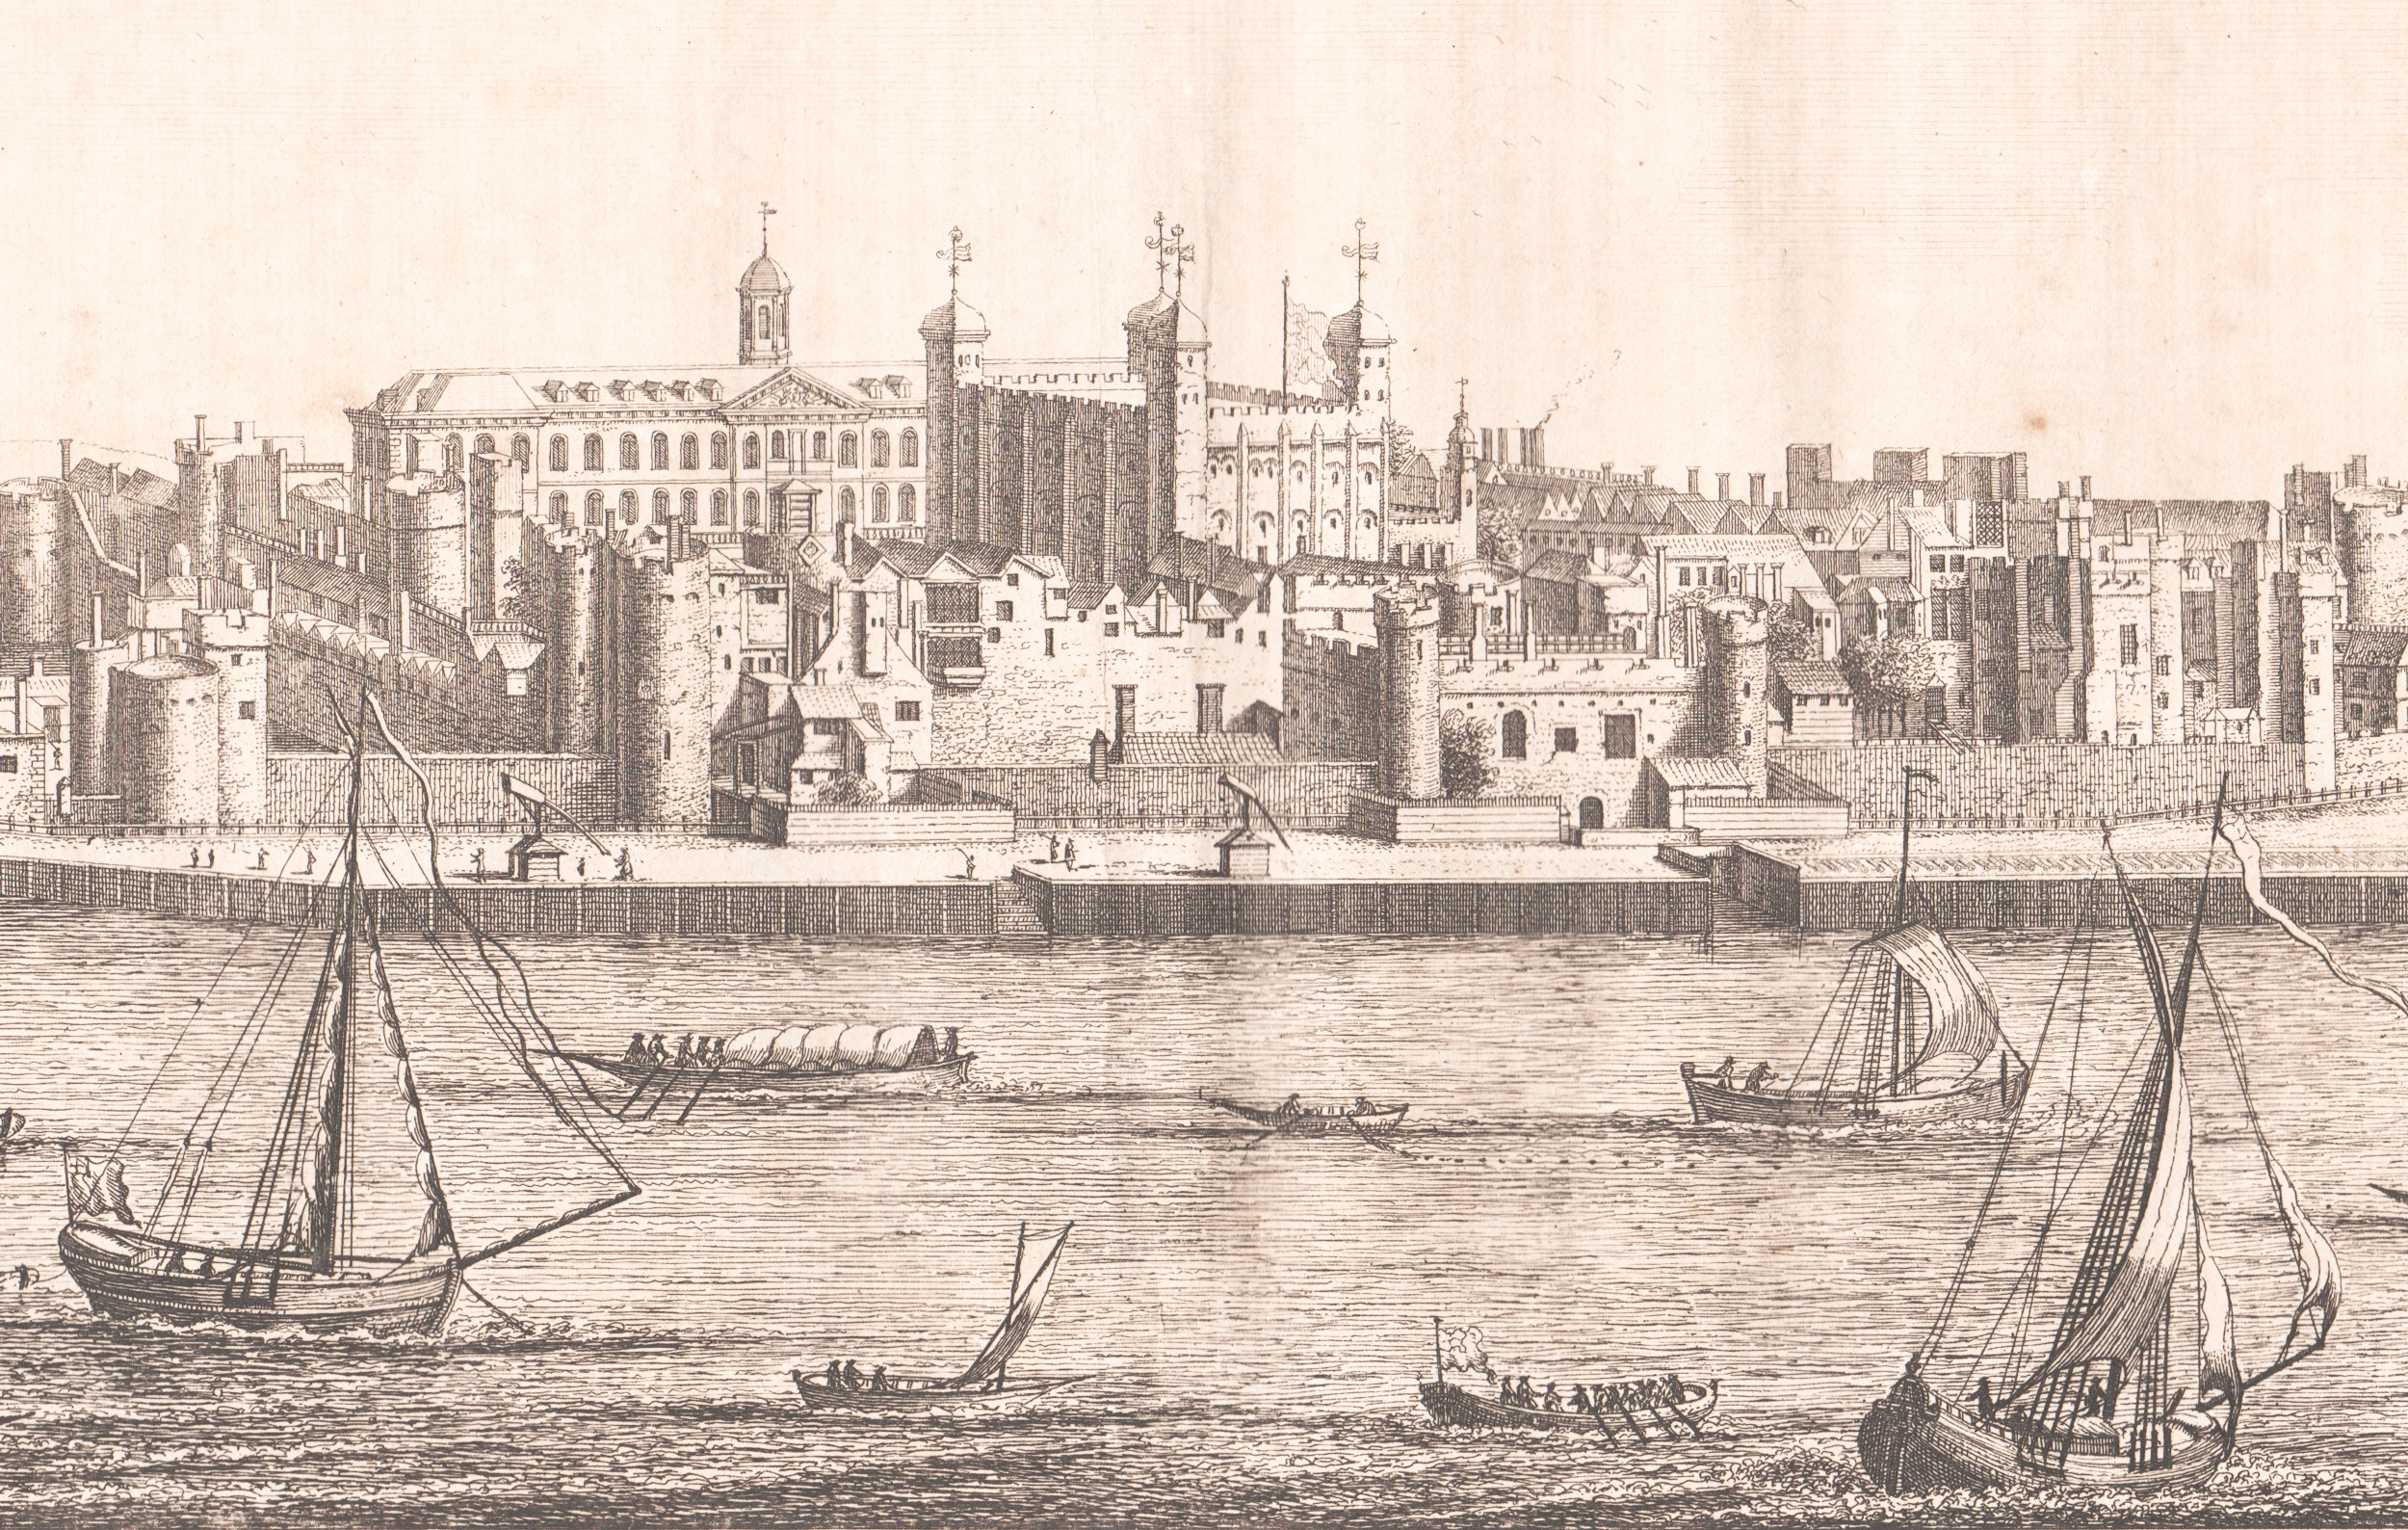 18th-century engravings of London, England